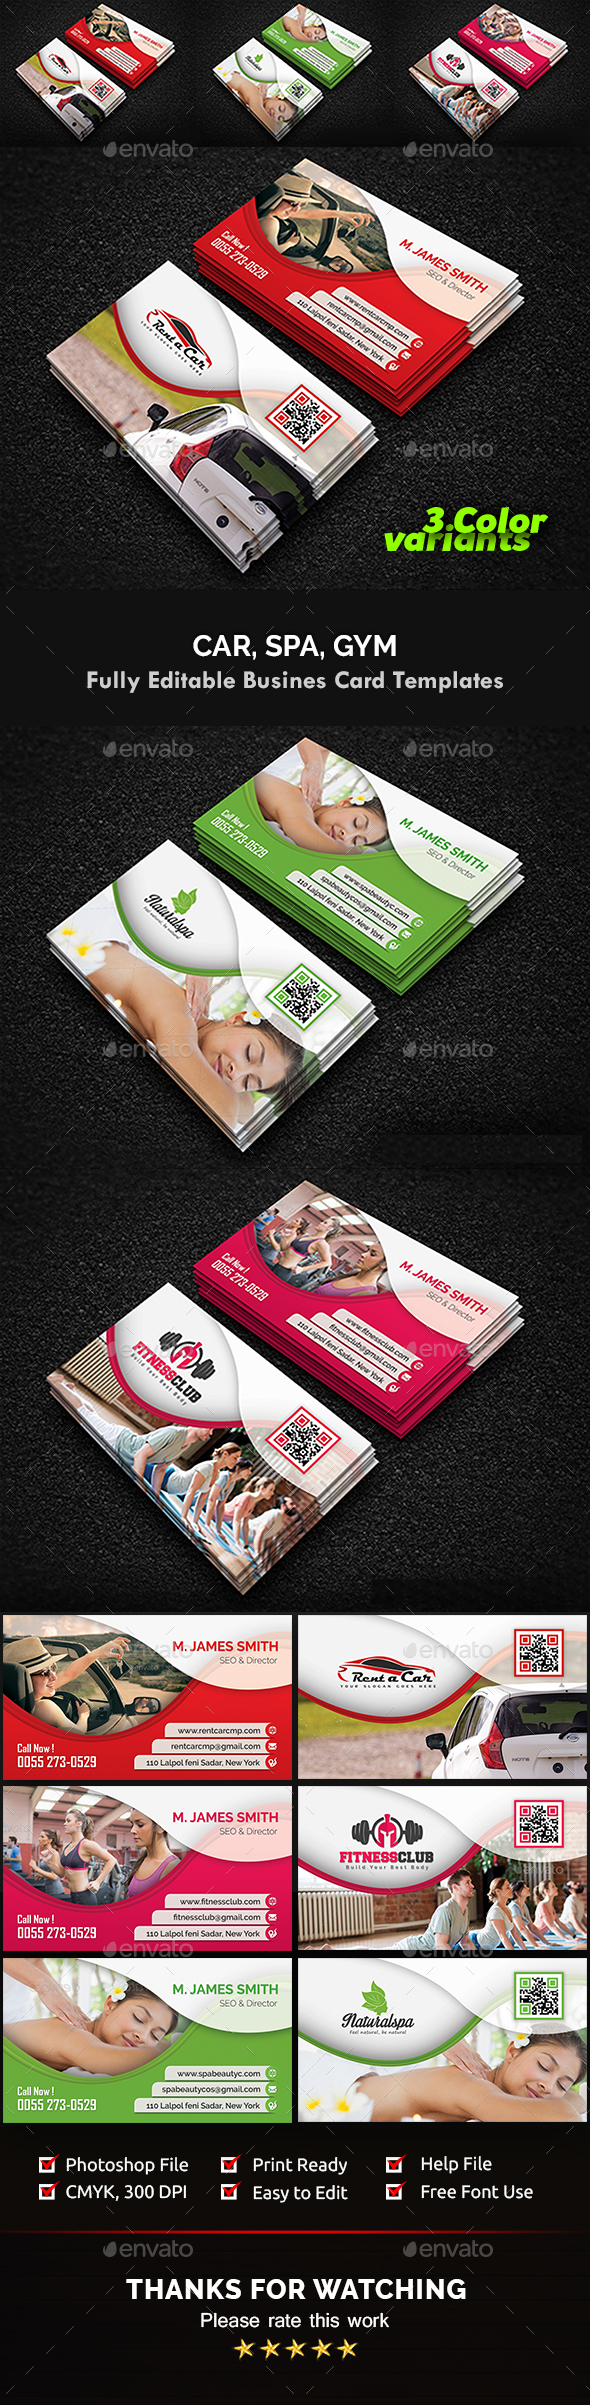 Gym, Spa & Car Business Card Templates by Creative-Touch | GraphicRiver